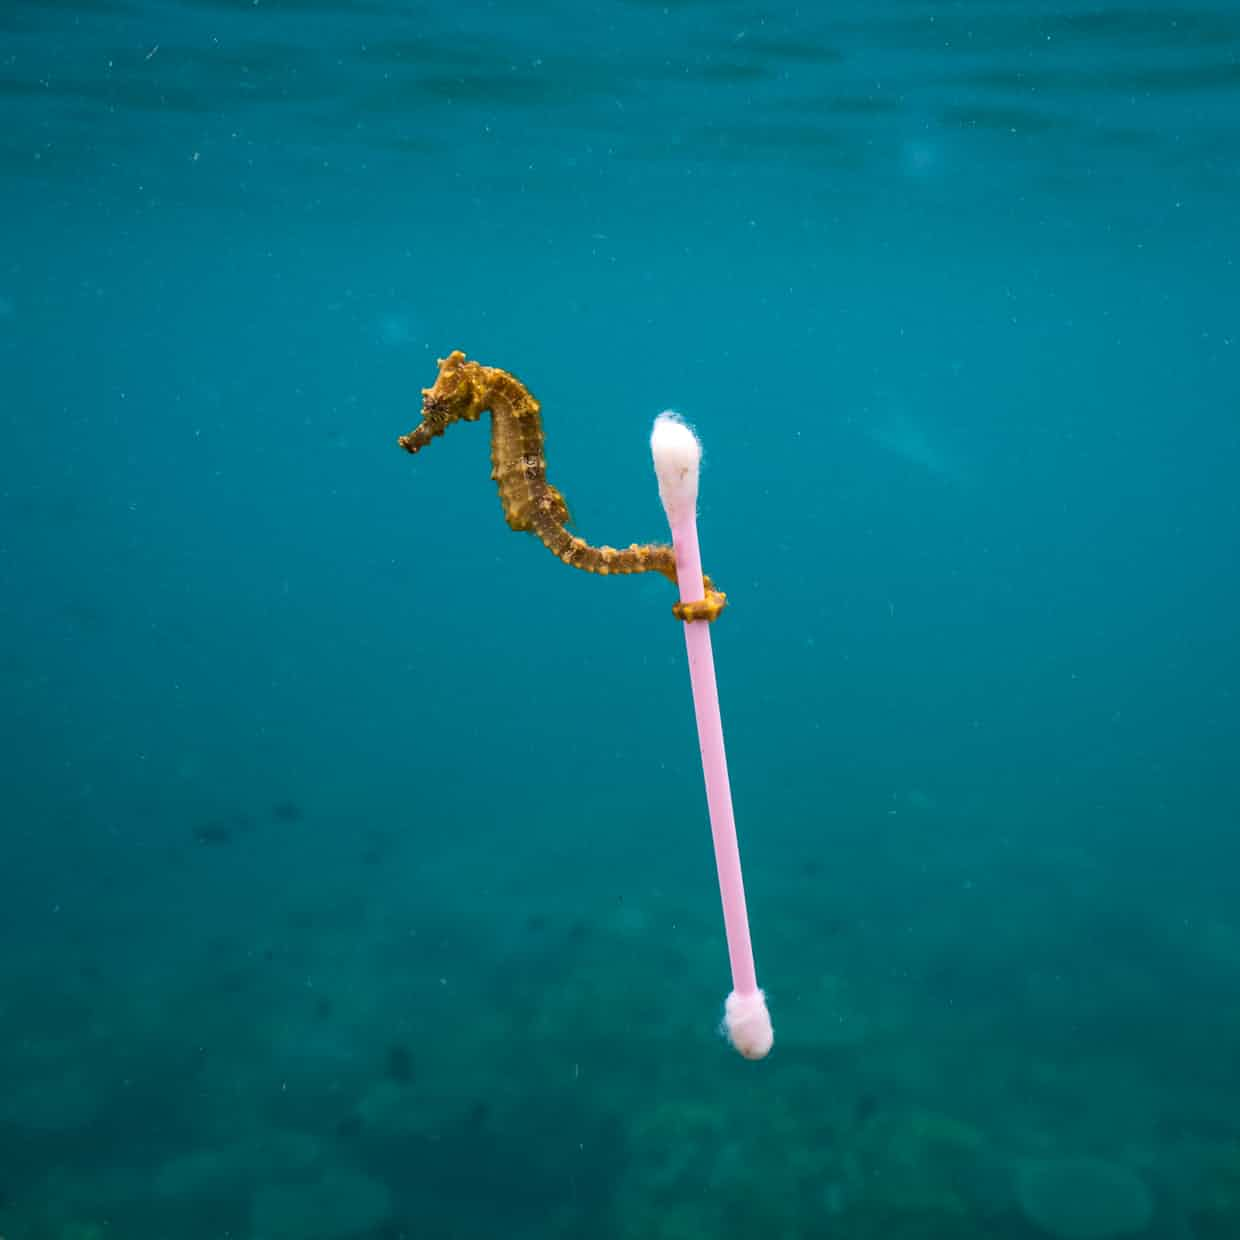 25 Of The Most Intriguing Pictures Of 2017 - A seahorse grabs on to rubbish in Indonesia